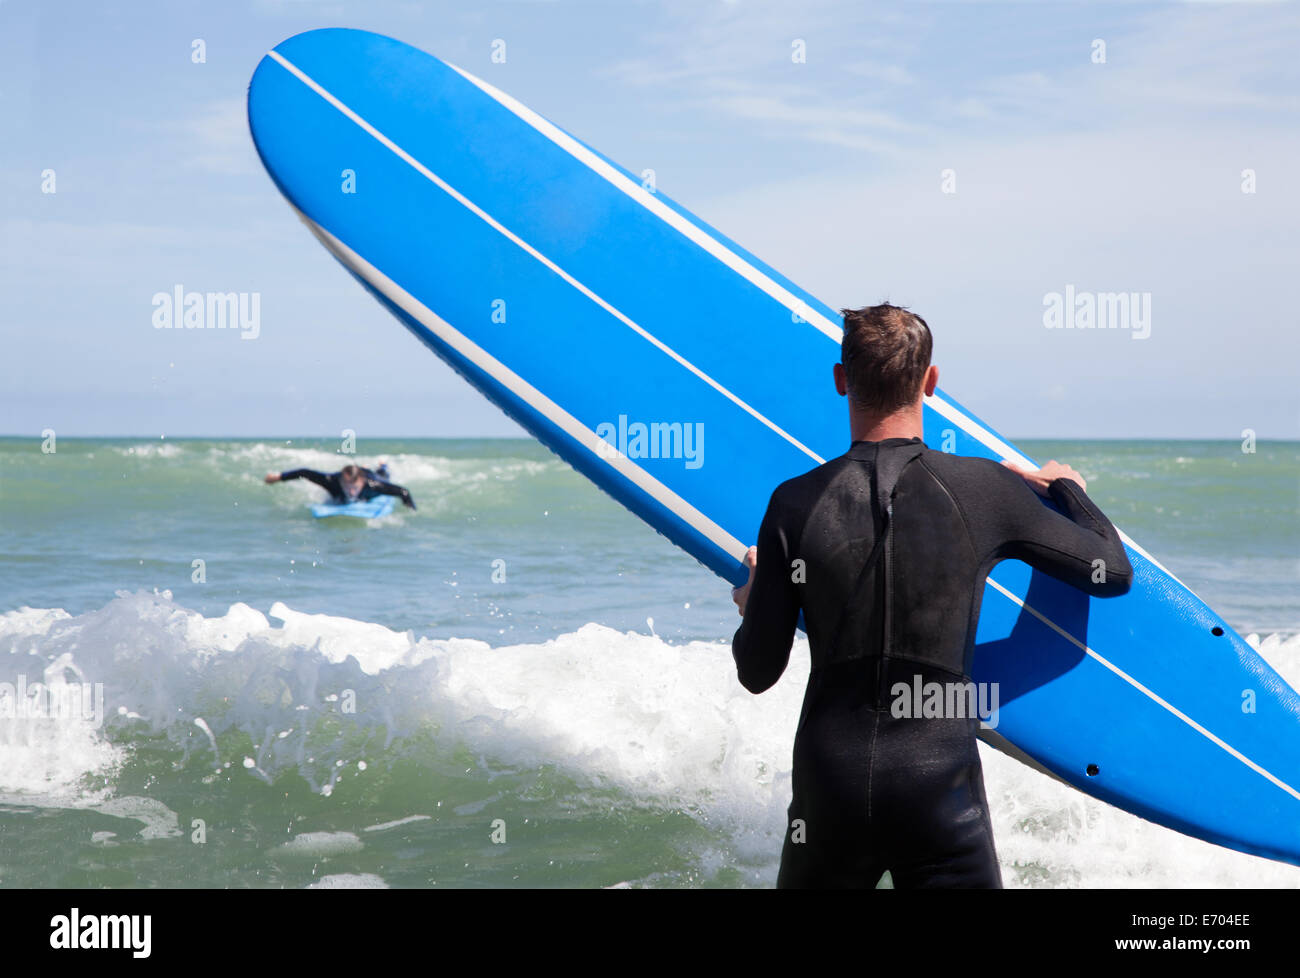 Rear view of male surfer with surfboard watching friend surfing - Stock Image